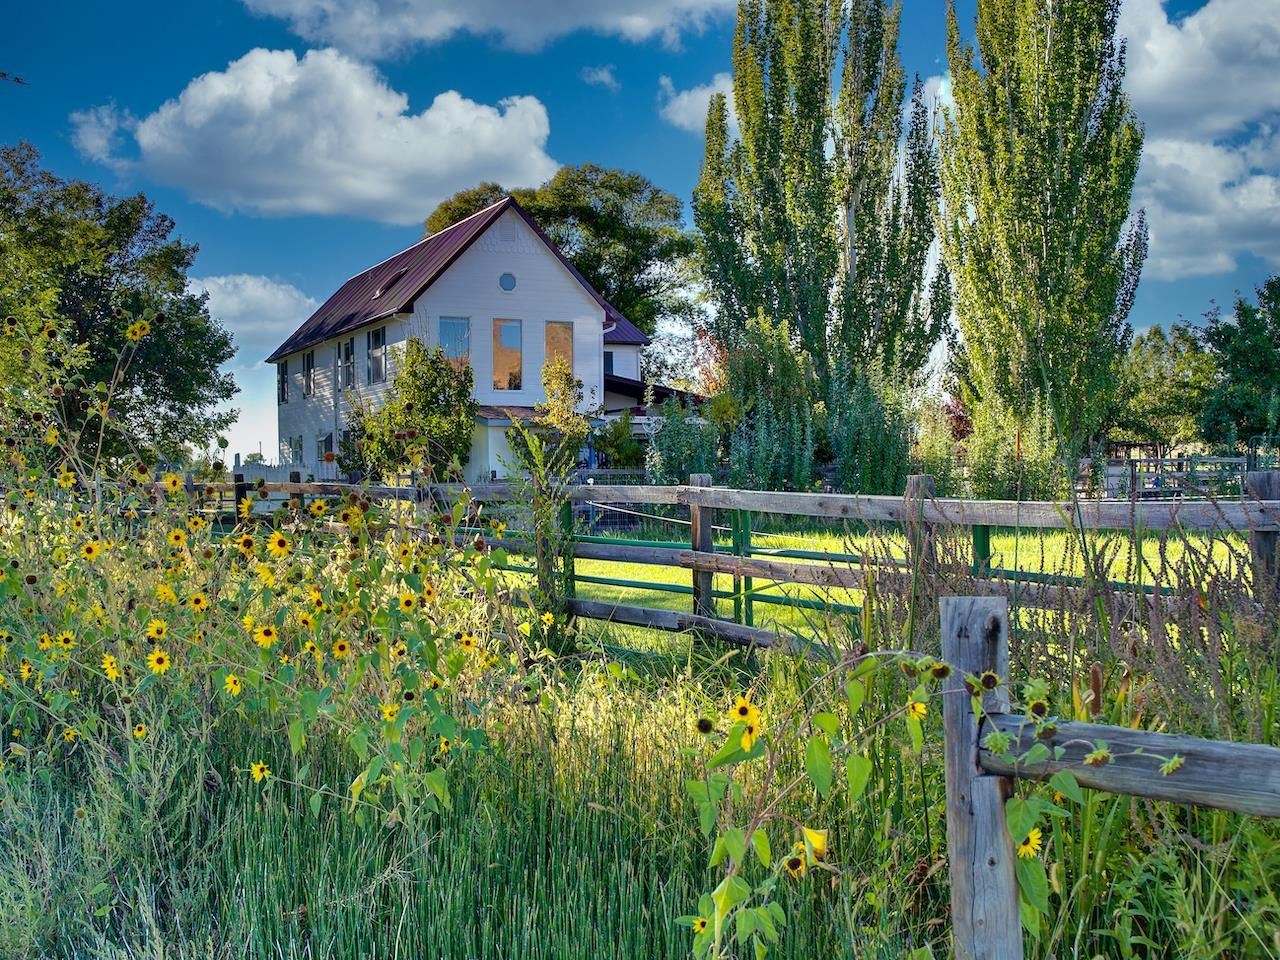 Views, Views, & More Views! Nestled up next to Palisade wine country and situated at the base of Mt. Garfield with dramatic views of the Bookcliffs and the Grand Mesa, this charming horse property is ready and waiting for you…and is a rare opportunity! The home is well laid out with room to roam through the main level living room, family room, updated kitchen, a ¾ bath and one of your four bedrooms. There are three additional bedrooms and two full bathrooms upstairs....the Owners Suite has a large on-suite bathroom with a jetted tub and dual shower heads.  The Owners Suite also has a large adjacent loft area bringing in the surrounding views and the options for this flexible area are extensive…will it be a library, sewing room, exercise area…let your imagination contemplate all the possibilities with this wonderful space for a custom retreat!  Walk through the large 3-season porch to the 5.41 acres of peaceful tranquility where you will find apple, pear, peach & cherry trees, a grape arbor, chicken coop, and an aviary.  Beautiful grass hay pasture with gated pipe irrigation, barn/workshop with office & tack room, covered paddocks, arena, open runs, round pen, loafing shed, hay backstop, & even an observation deck for the arena area too!  Attend Taylor Elementary, Mt. Garfield Middle School, and Palisade High Schools. There is so much more to see…call today for your personal tour!